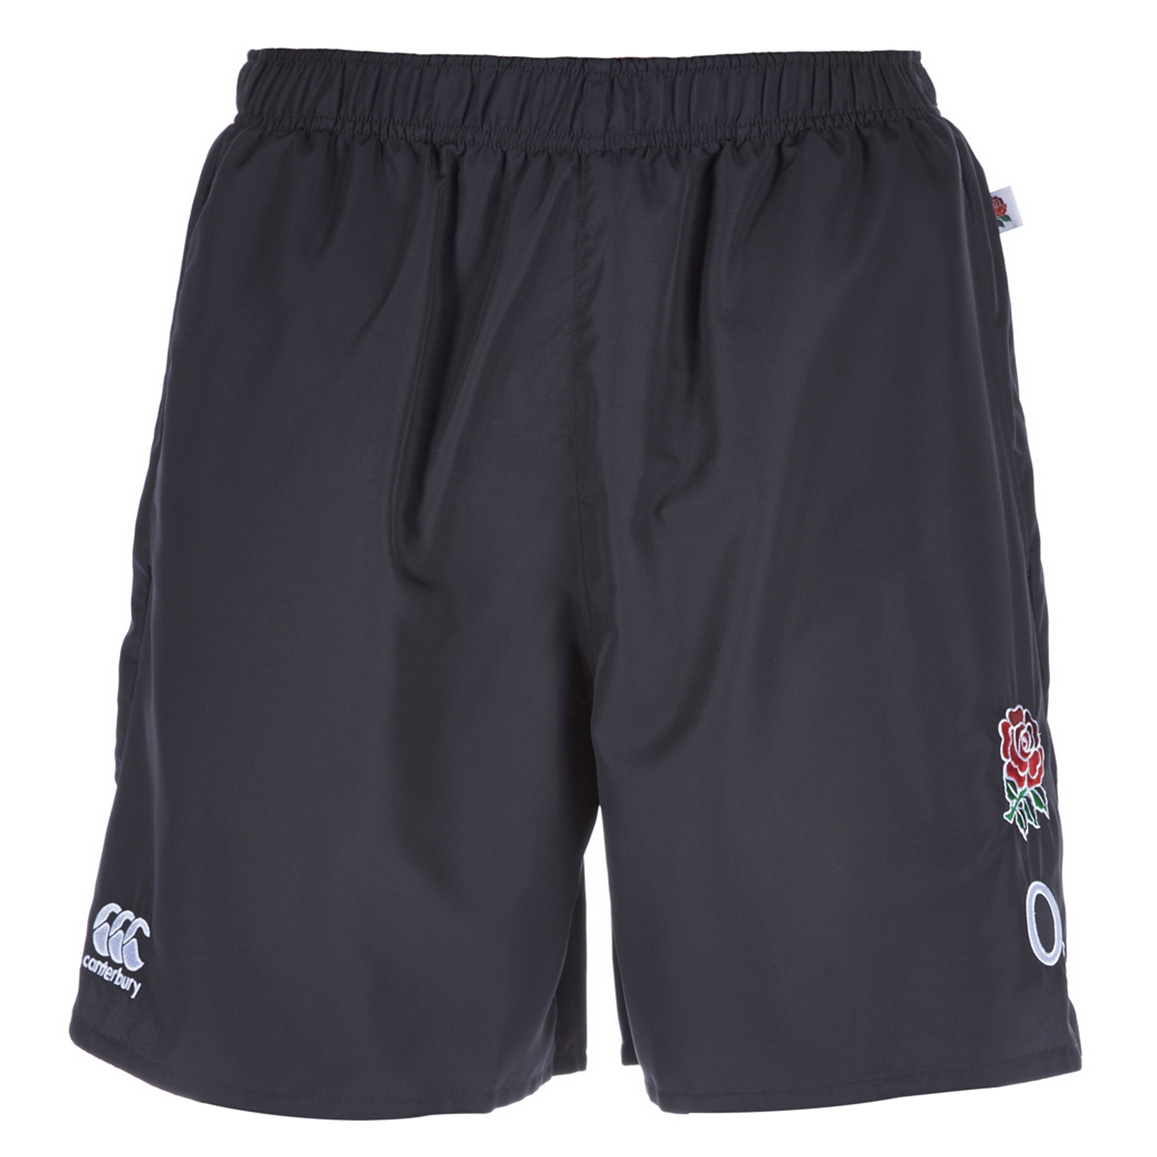 England Gym Short Grey